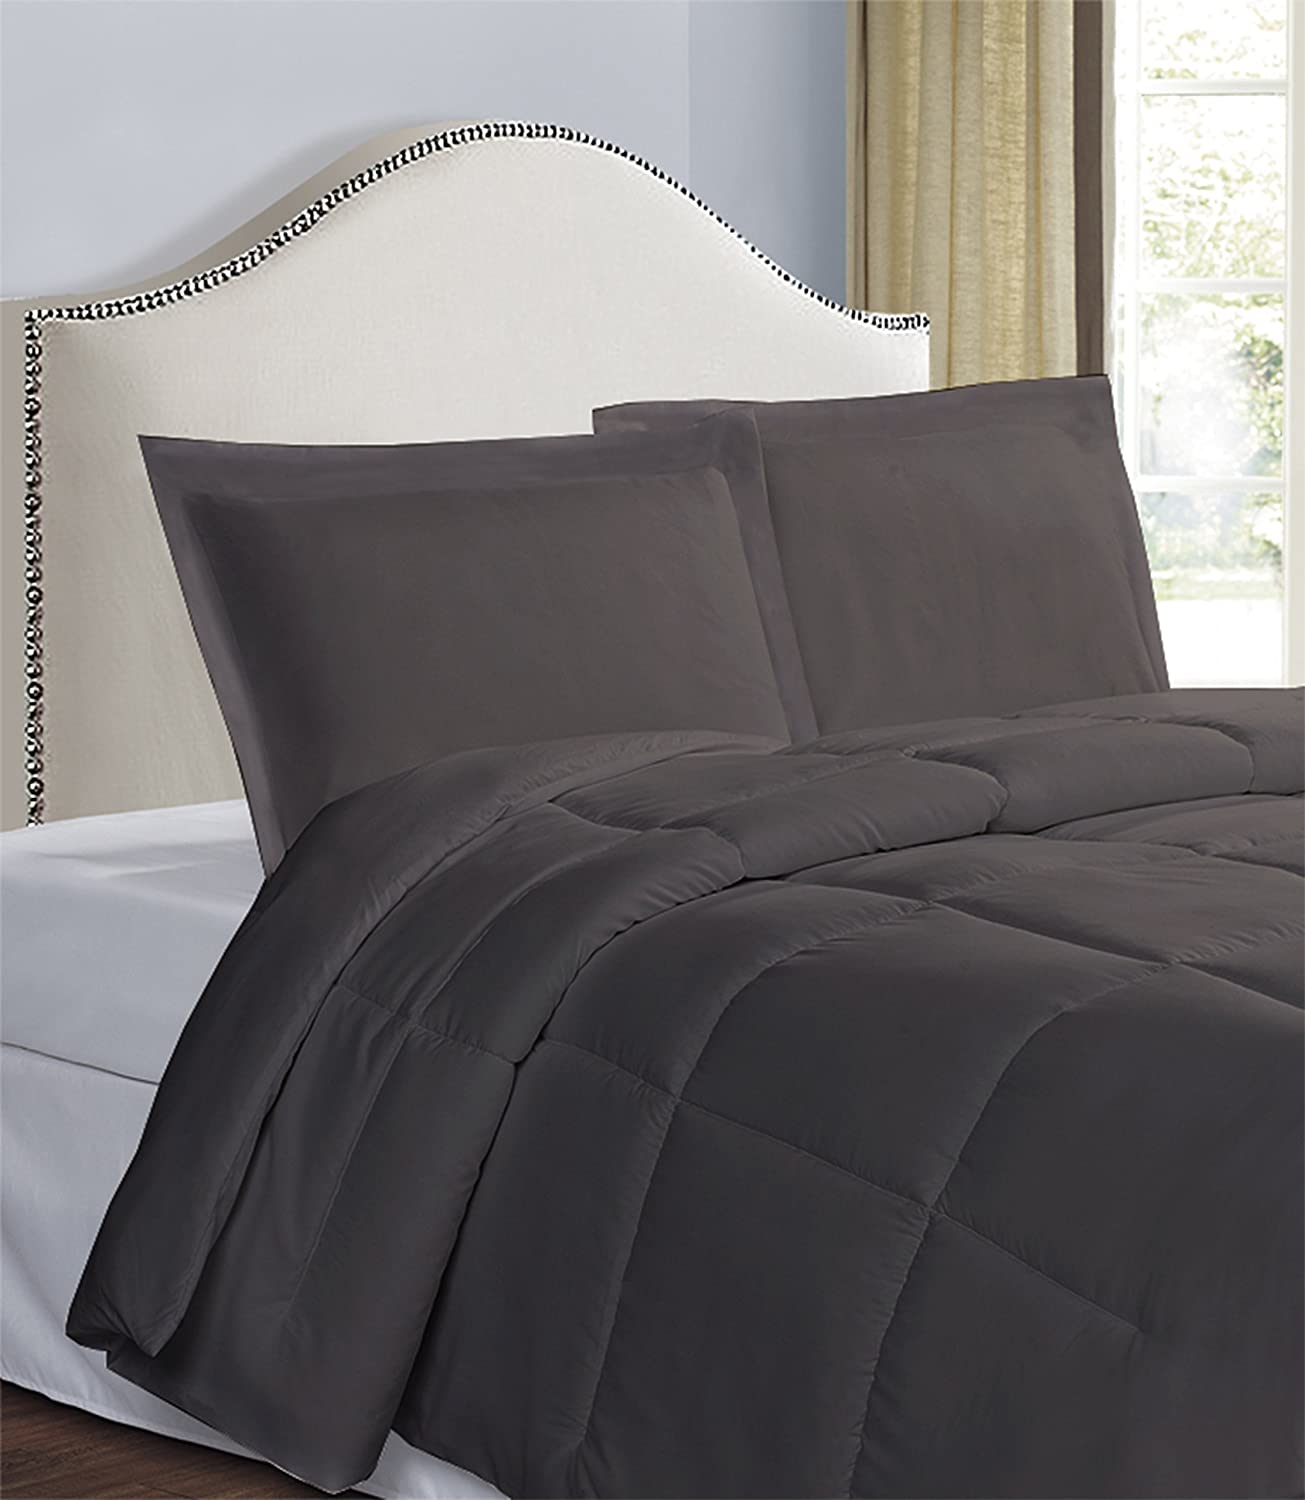 Black 2 Pack Standard Today/'s Home Pillow Shams Soft Microfiber Tailored Classic Styling